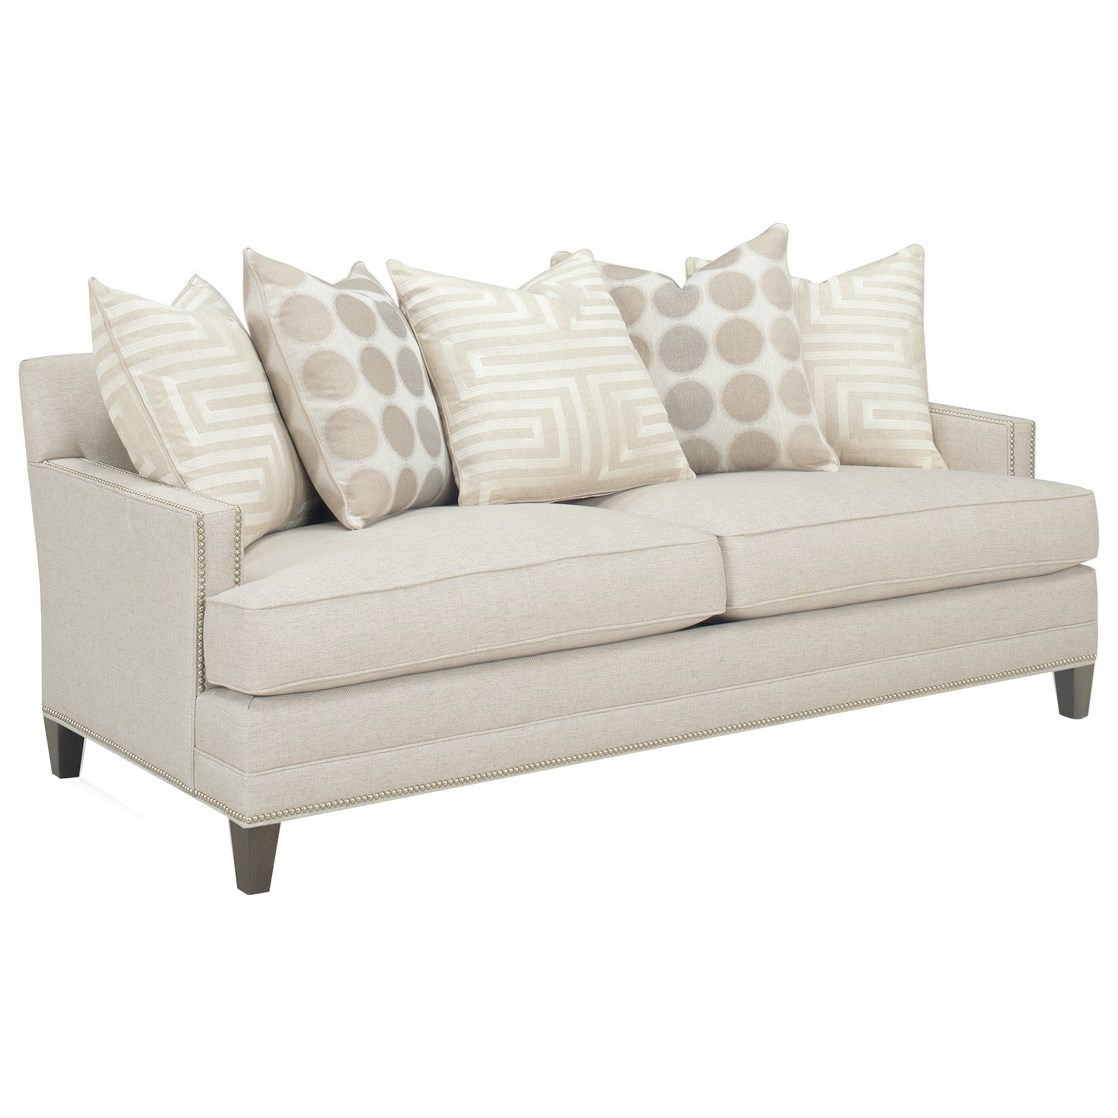 Personal Design Series Tanner Customizable Sofa by Lexington at Baer's Furniture